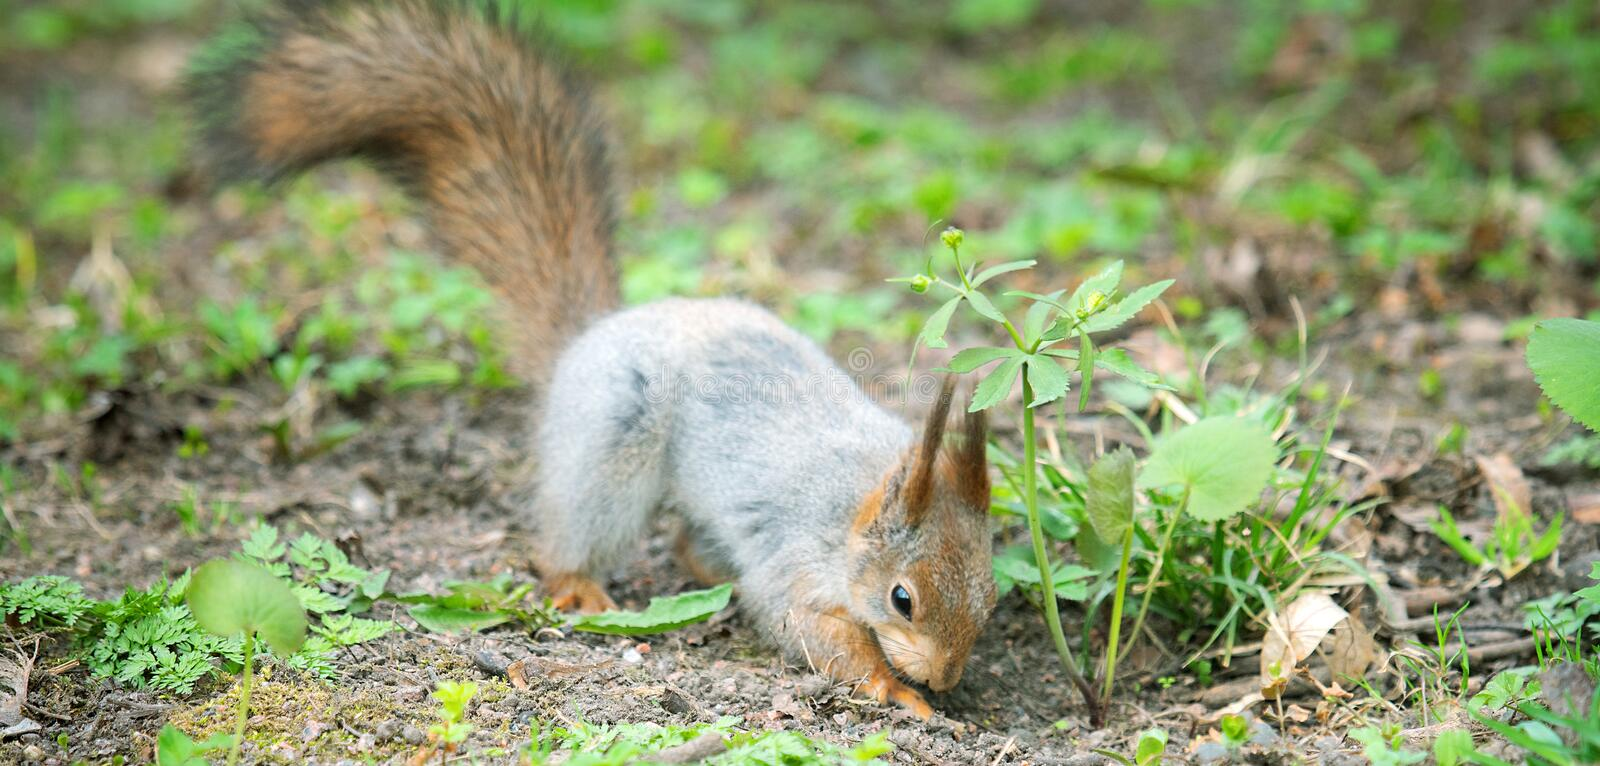 Red Squirrel in winter plumage in spring in Park. Red Squirrel in winter plumage in the spring in the Park. Squirrel buries a nut in the ground stock photo